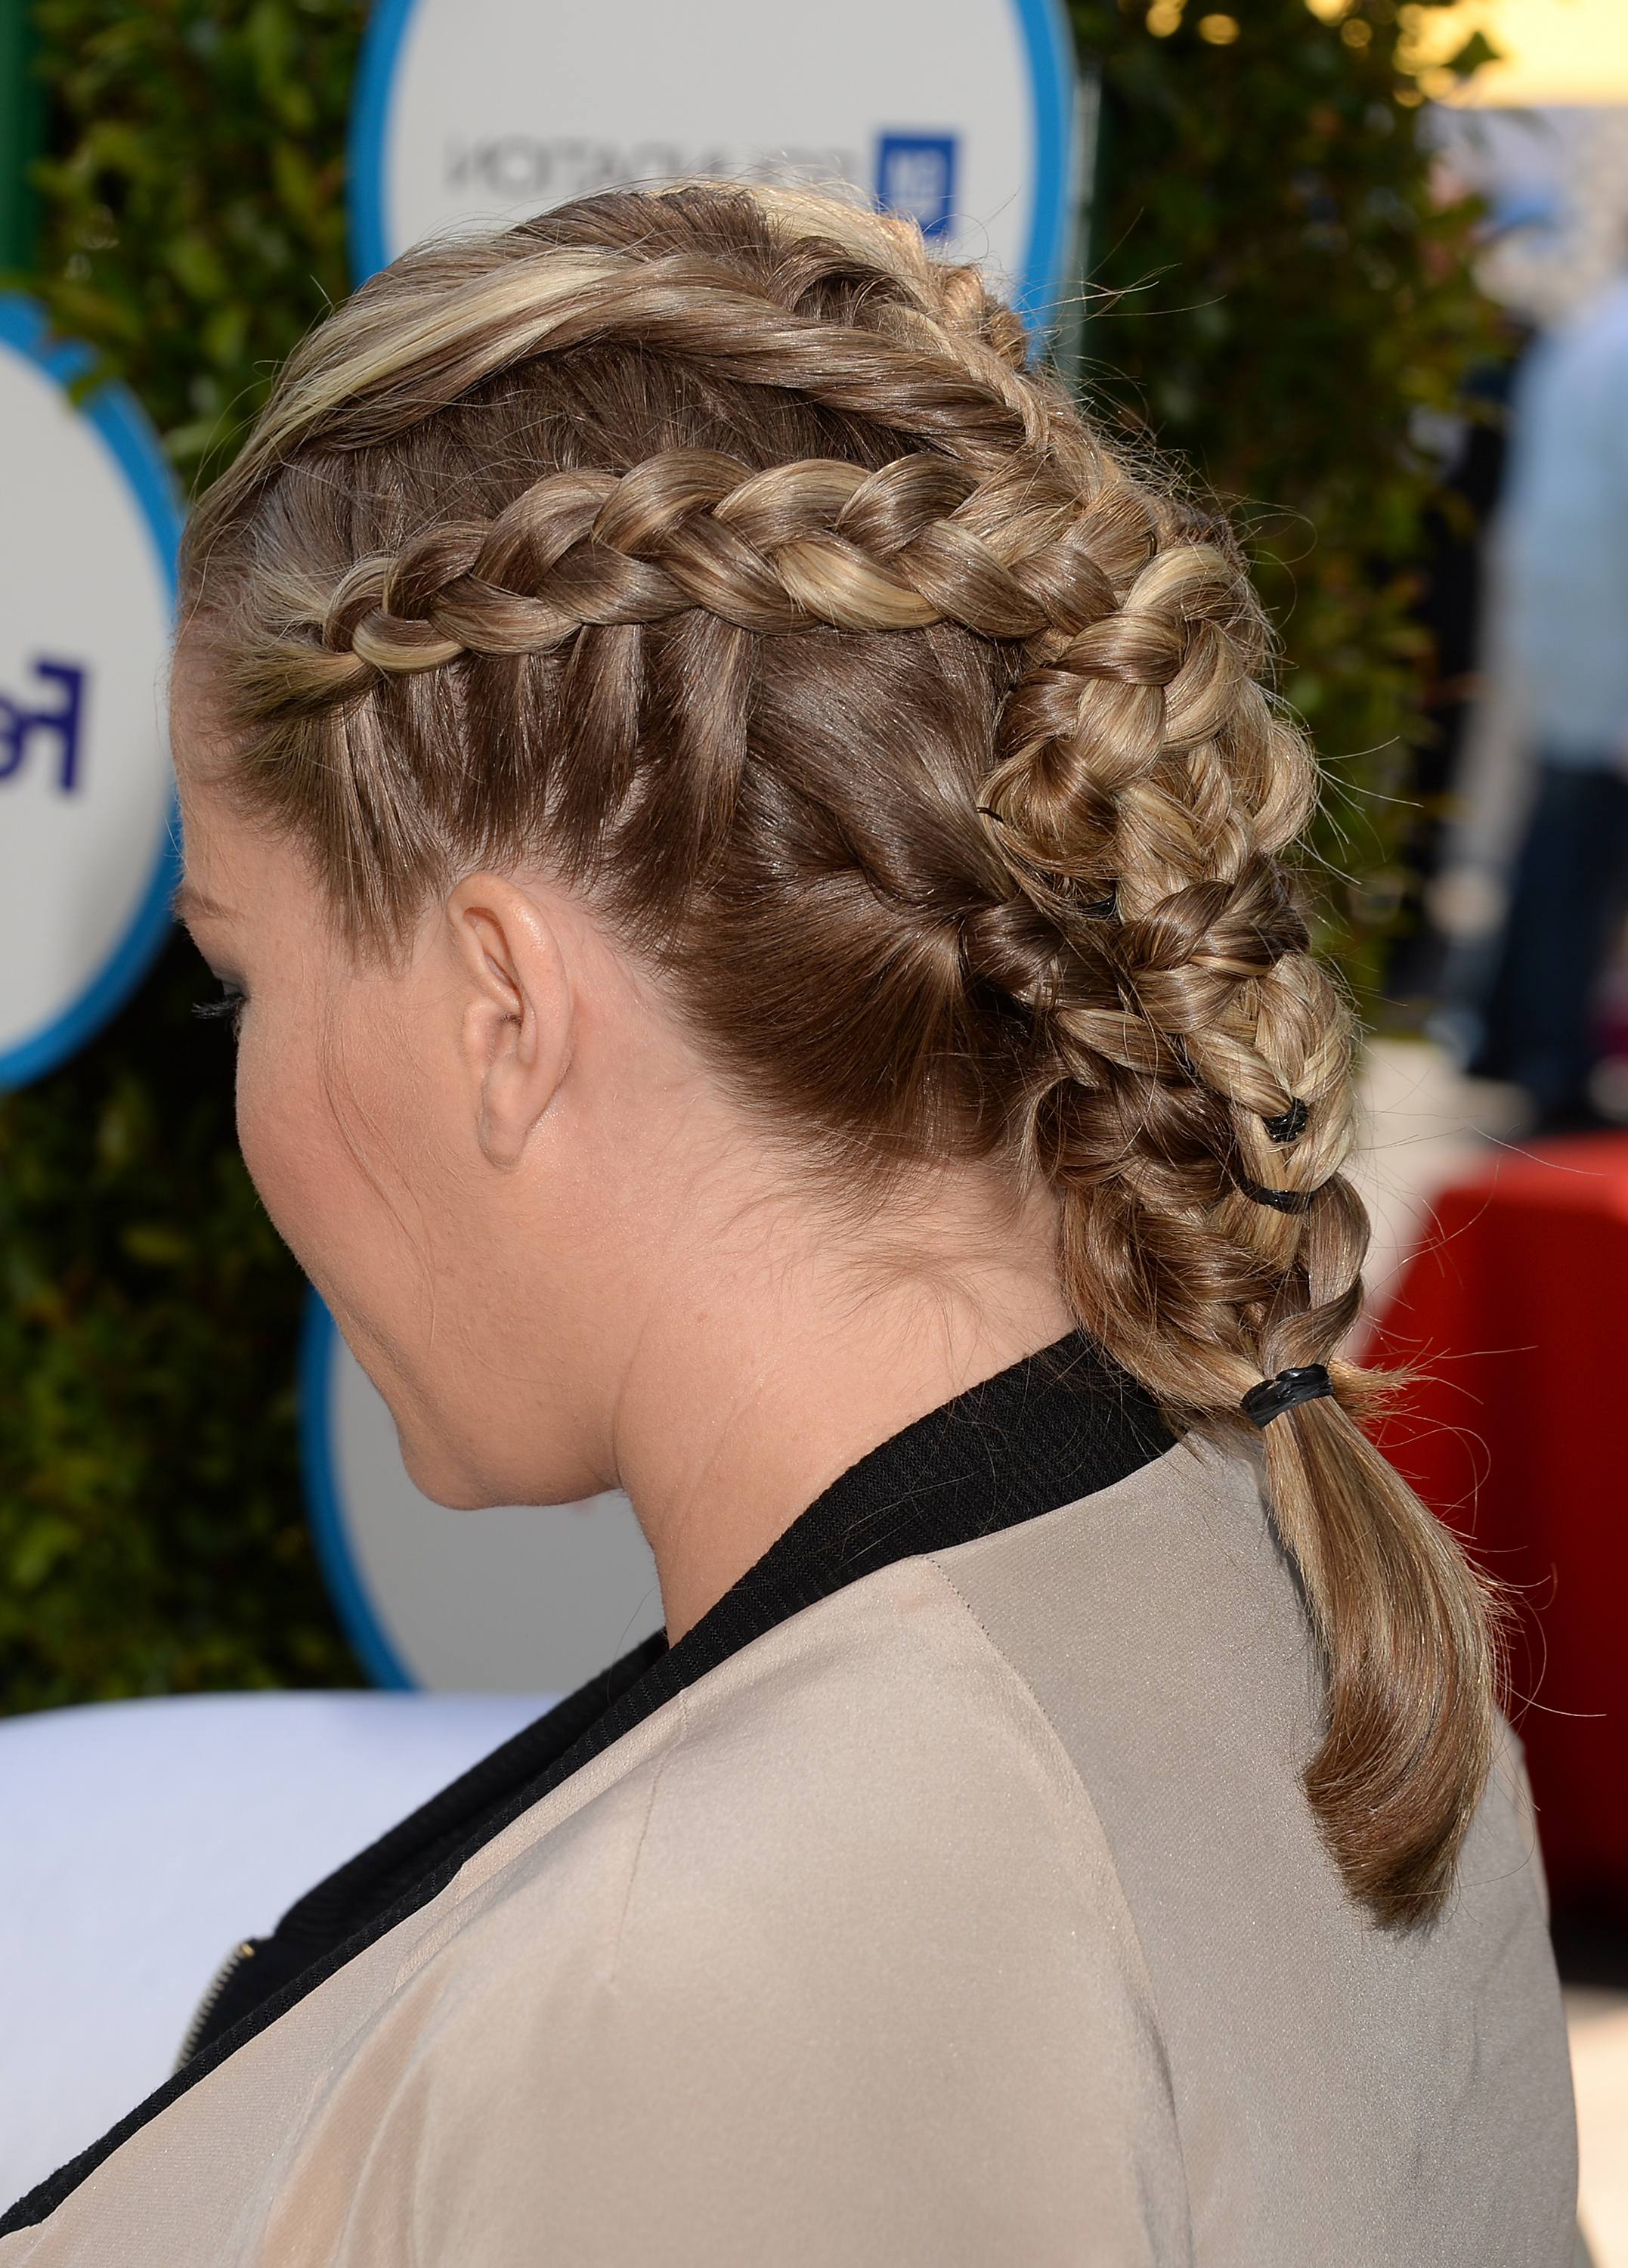 10 Simple Ways To Make Any Braid Look Even Cooler So It'll Intended For Most Recently Released Mermaid Inception Braid Hairstyles (Gallery 11 of 20)